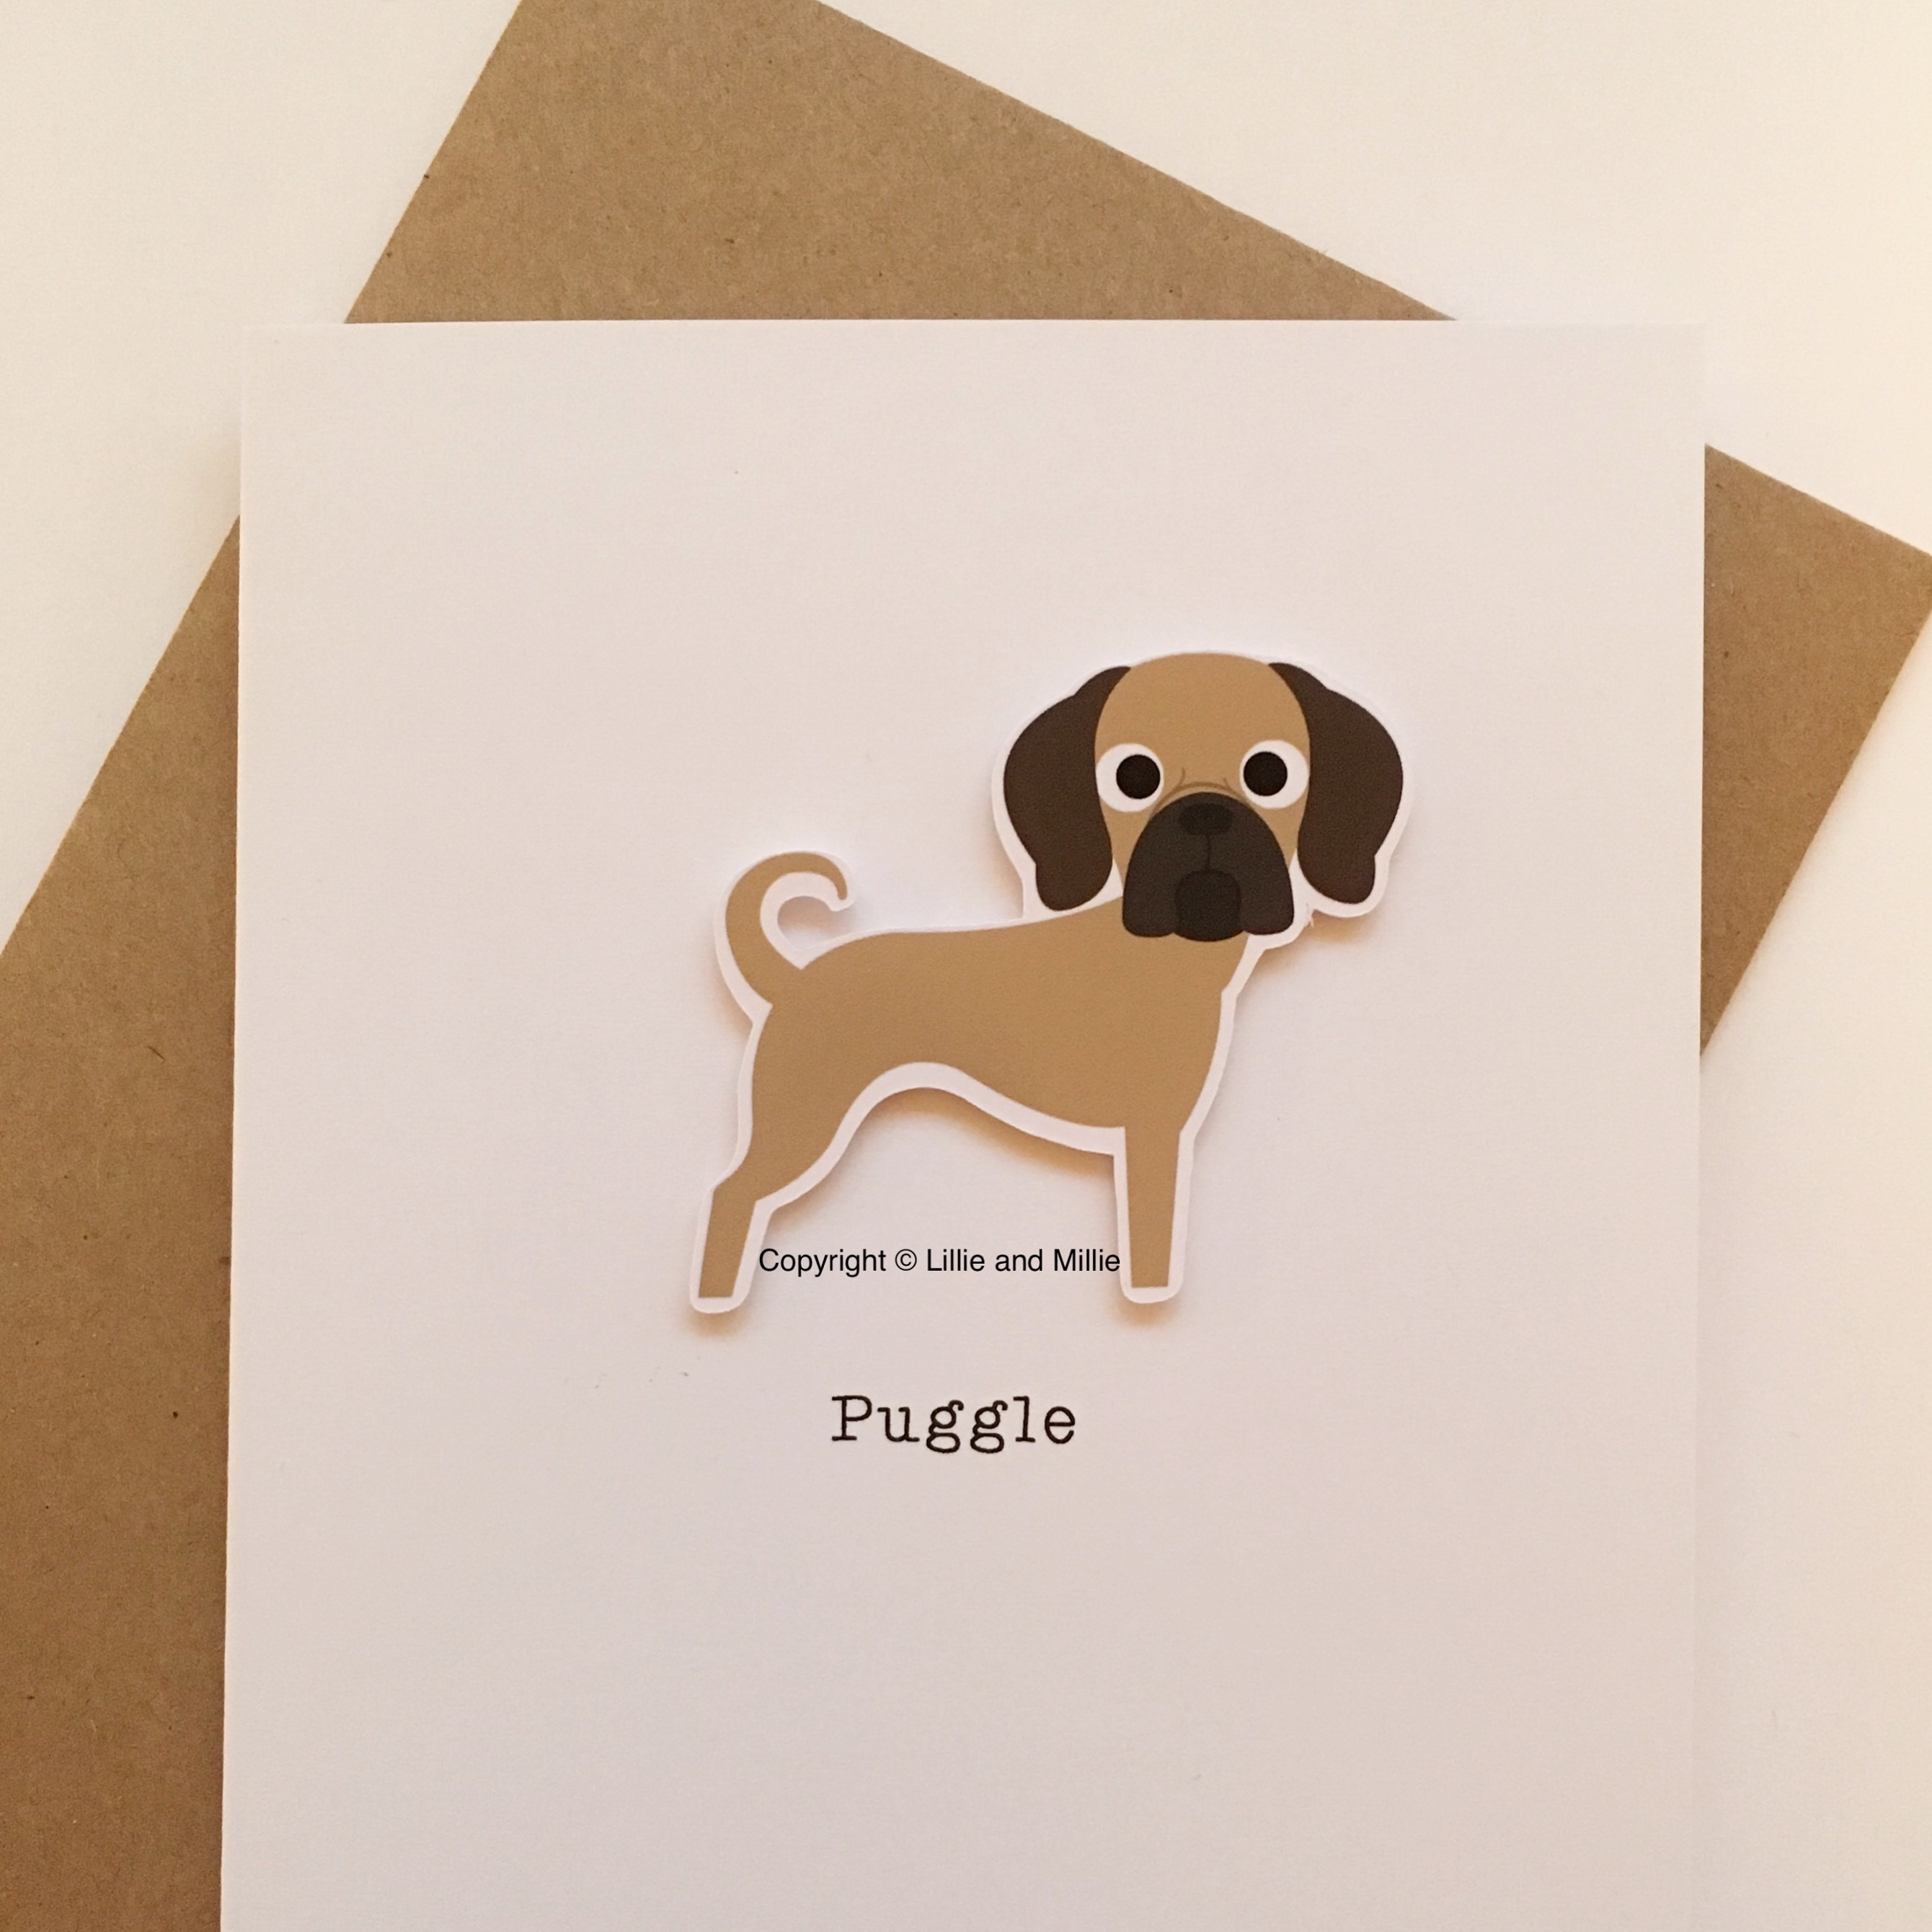 Cute and Cuddly Puggle Card